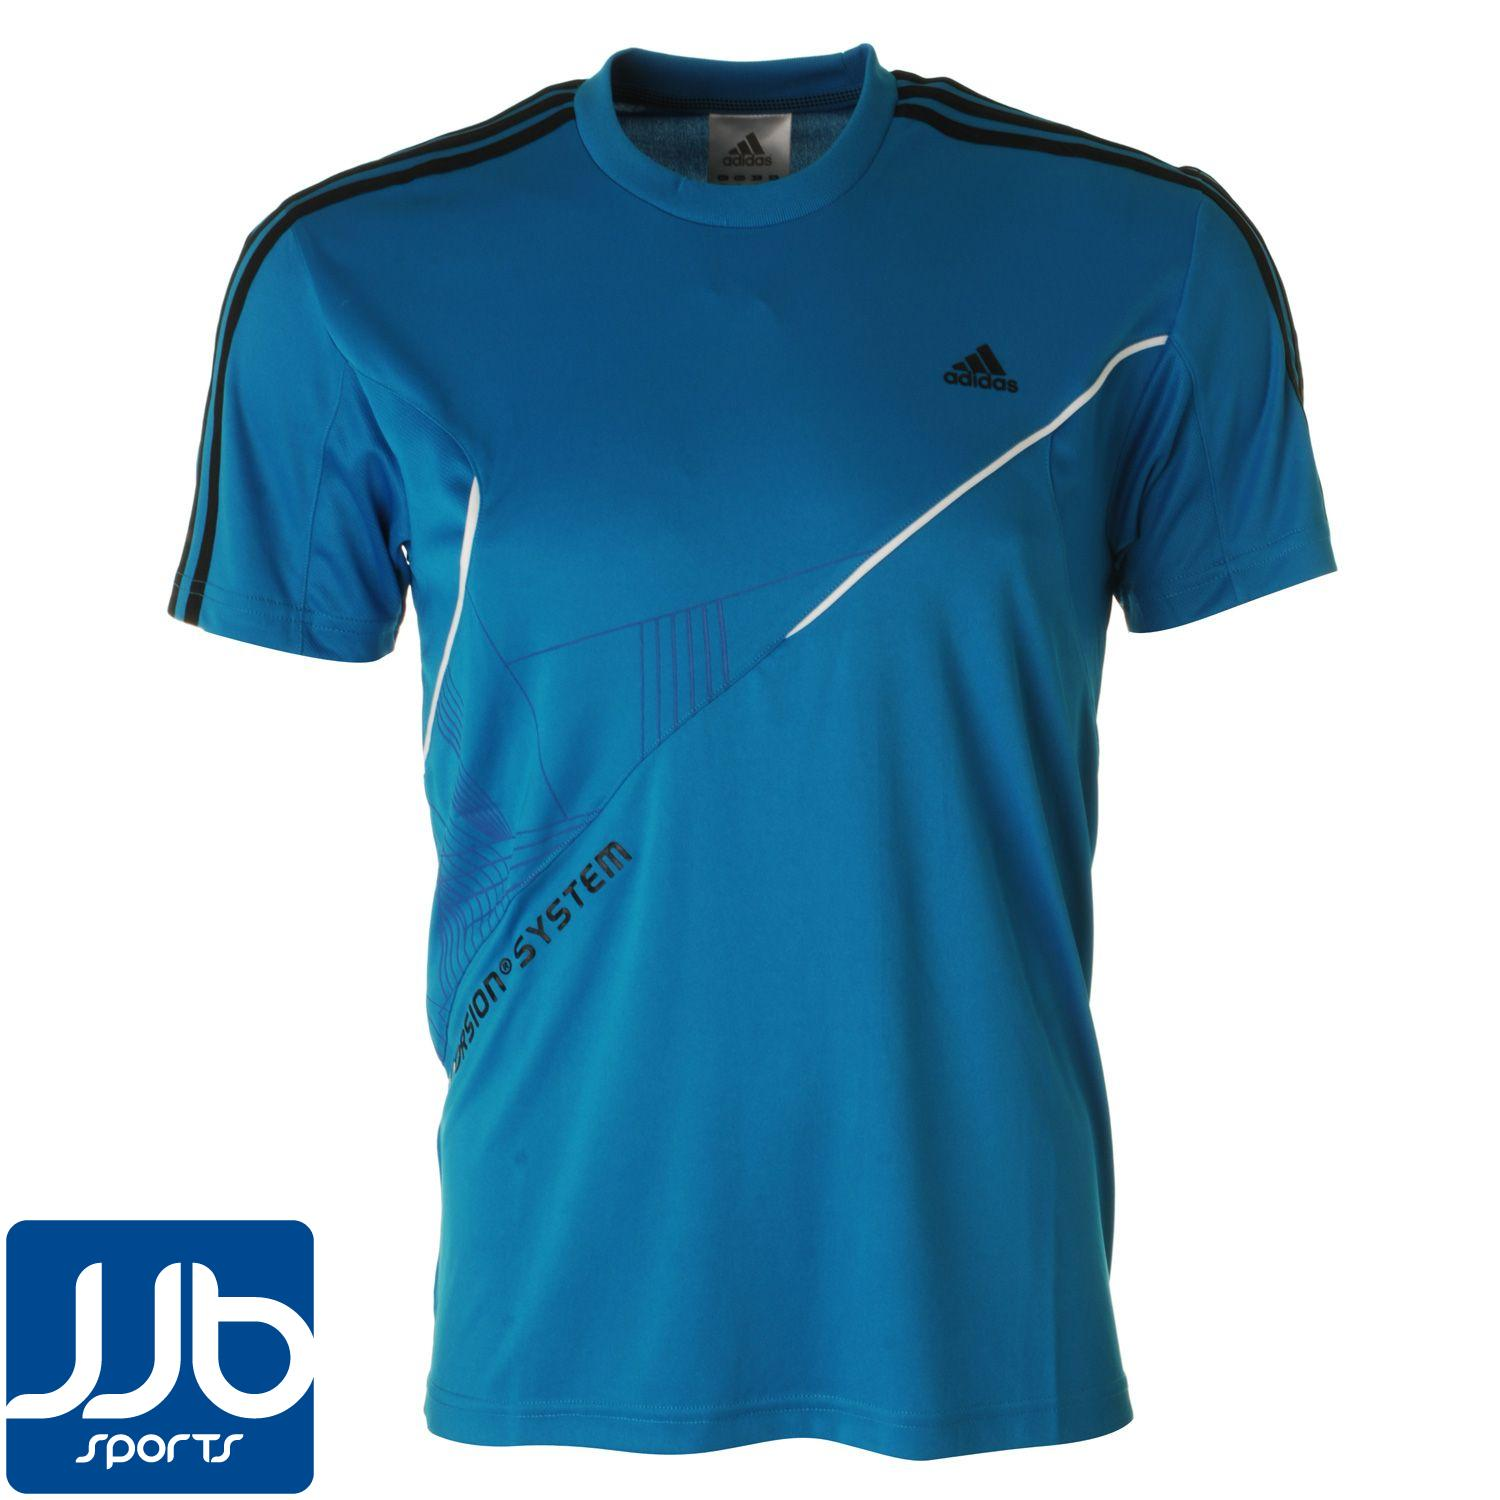 Adidas Torsion Mens 100 Polyester Breathable T Shirt